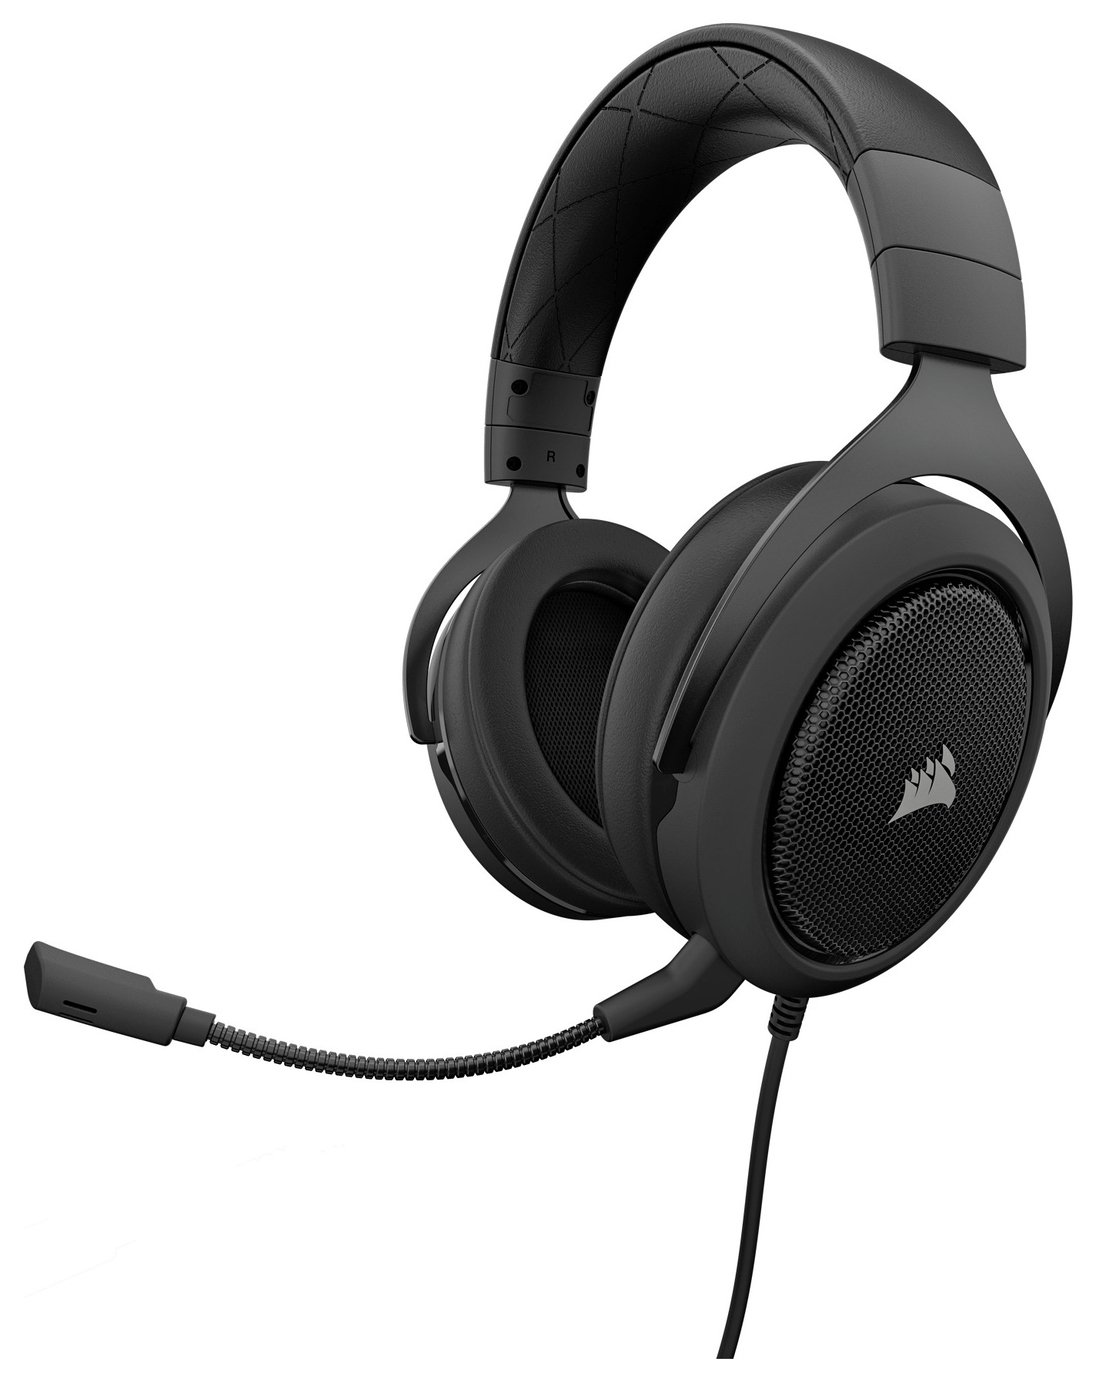 Image of Corsair HS60 Gaming Headset - Black